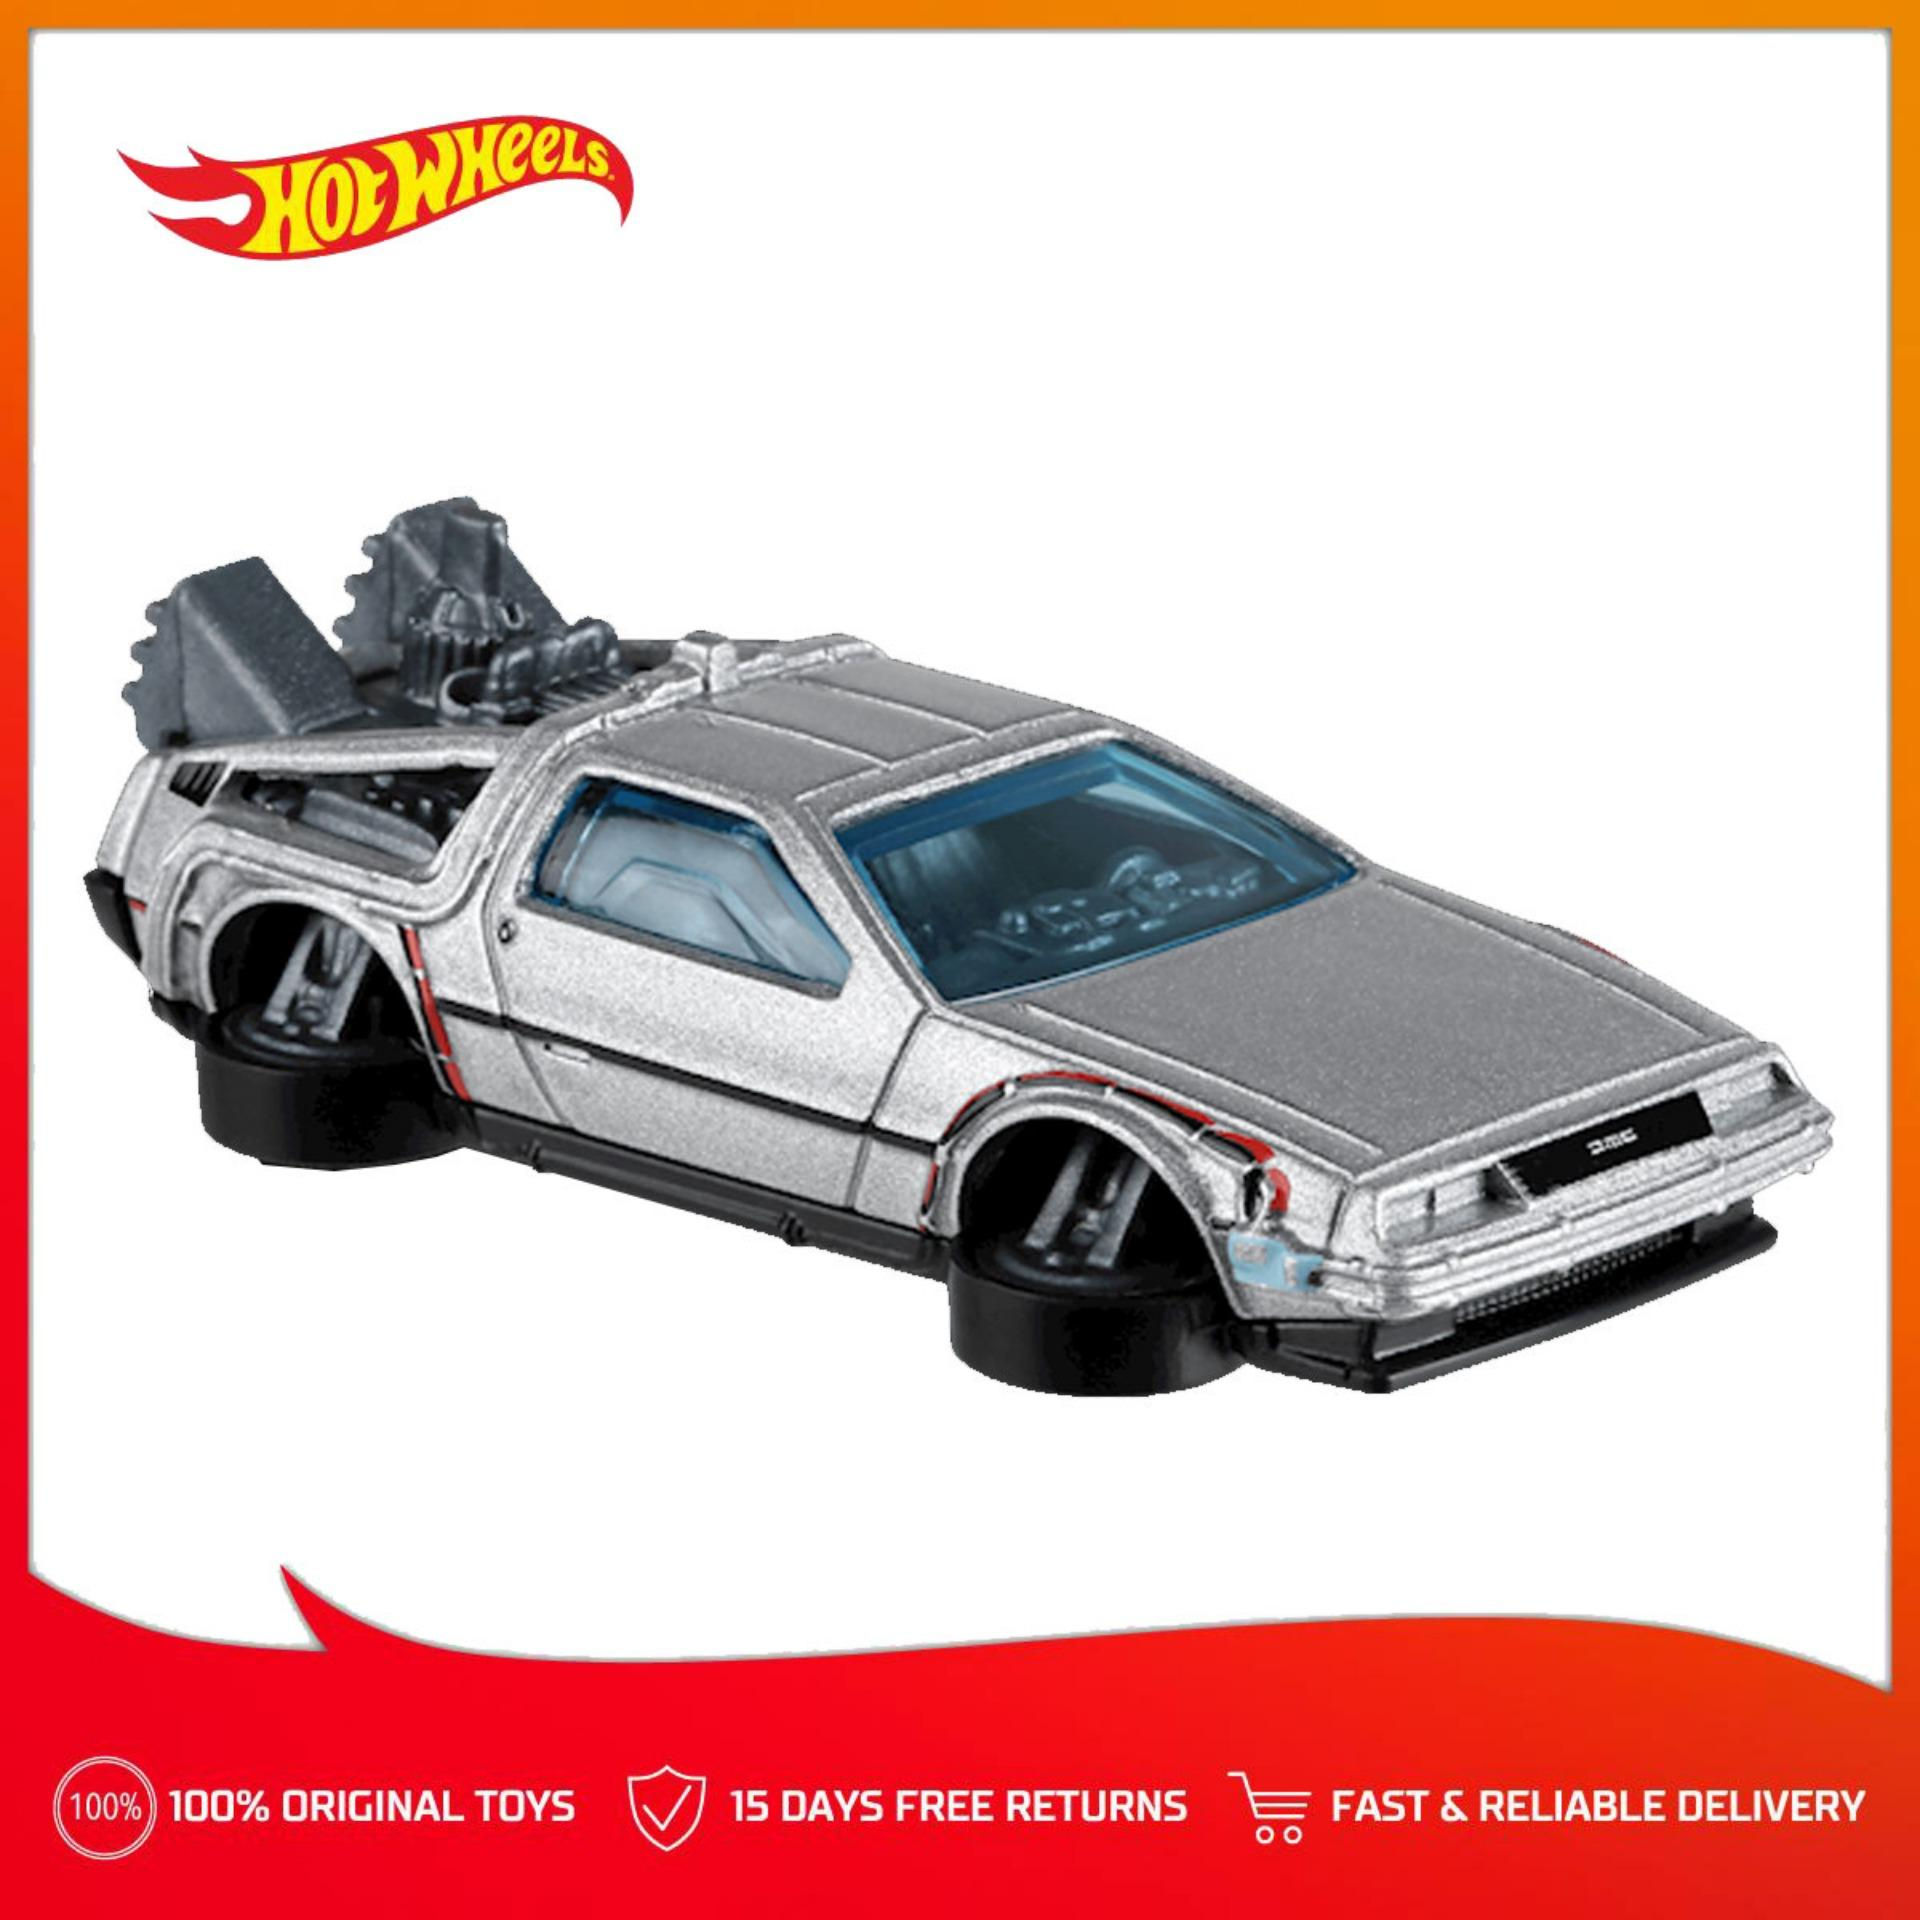 Hot Wheels Philippines: Hot Wheels price list - Scooter, Cars